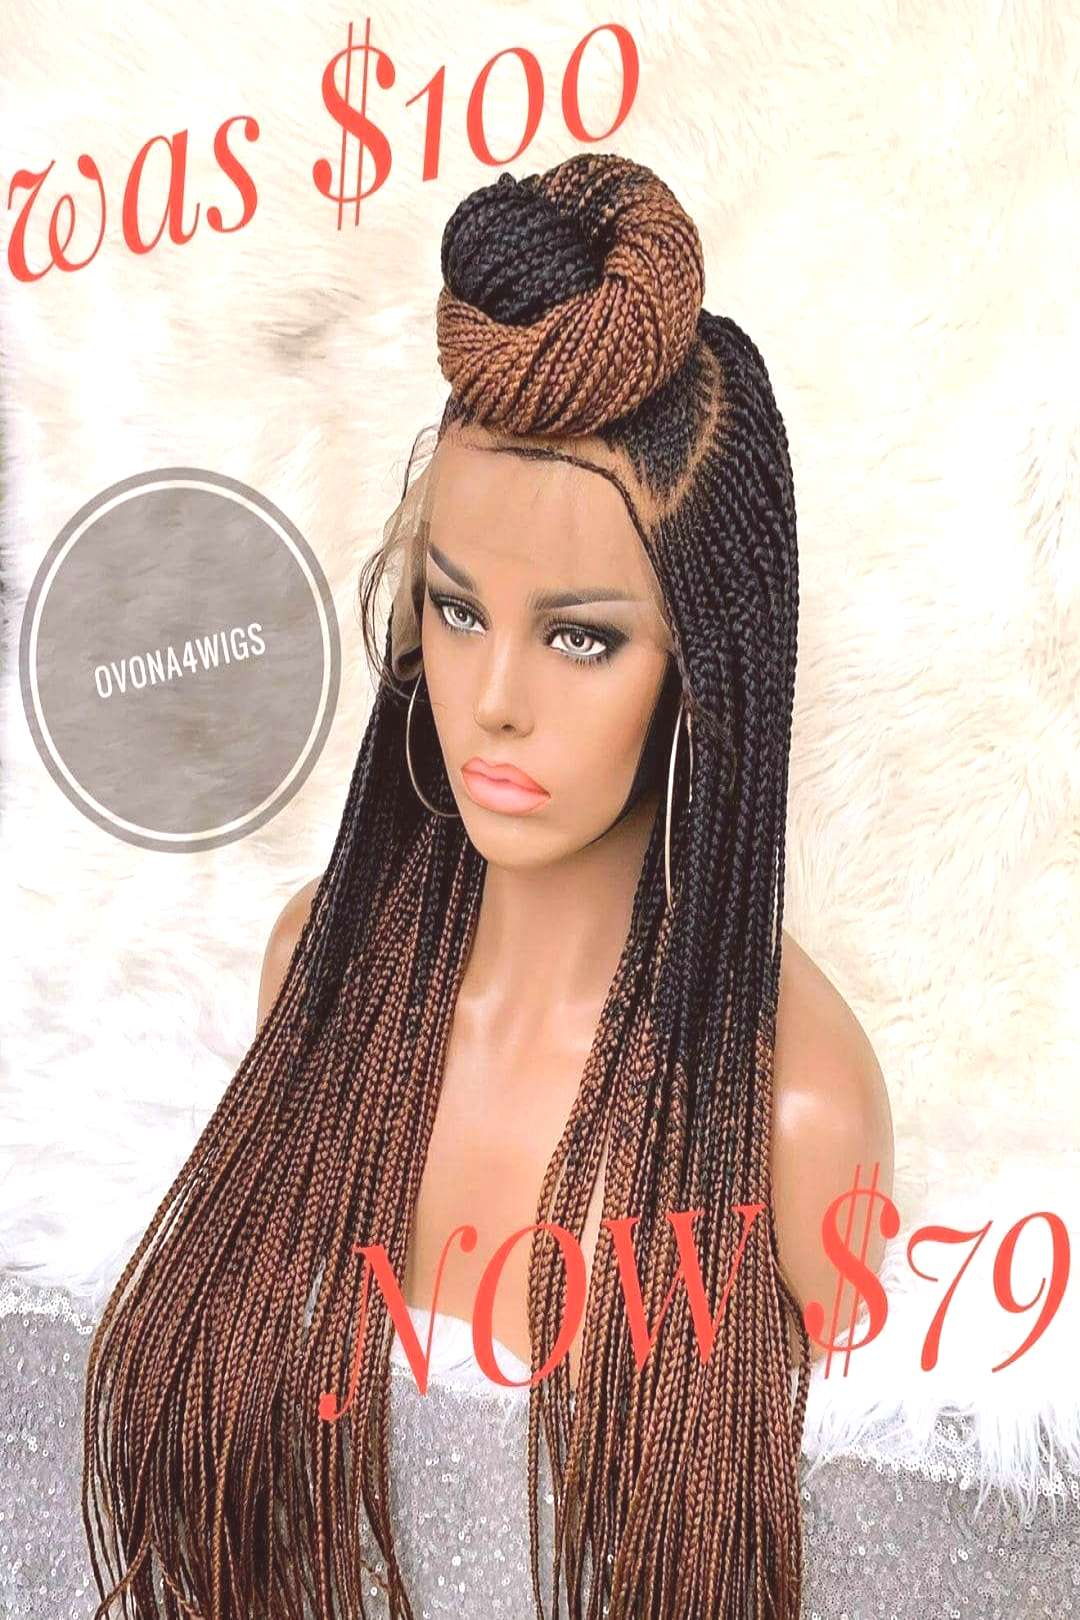 NEW16-most-popular-hairstyles-for-black-women-breeds-large-2019-Page-3of7 KET BRAID WIG MADE BY @o